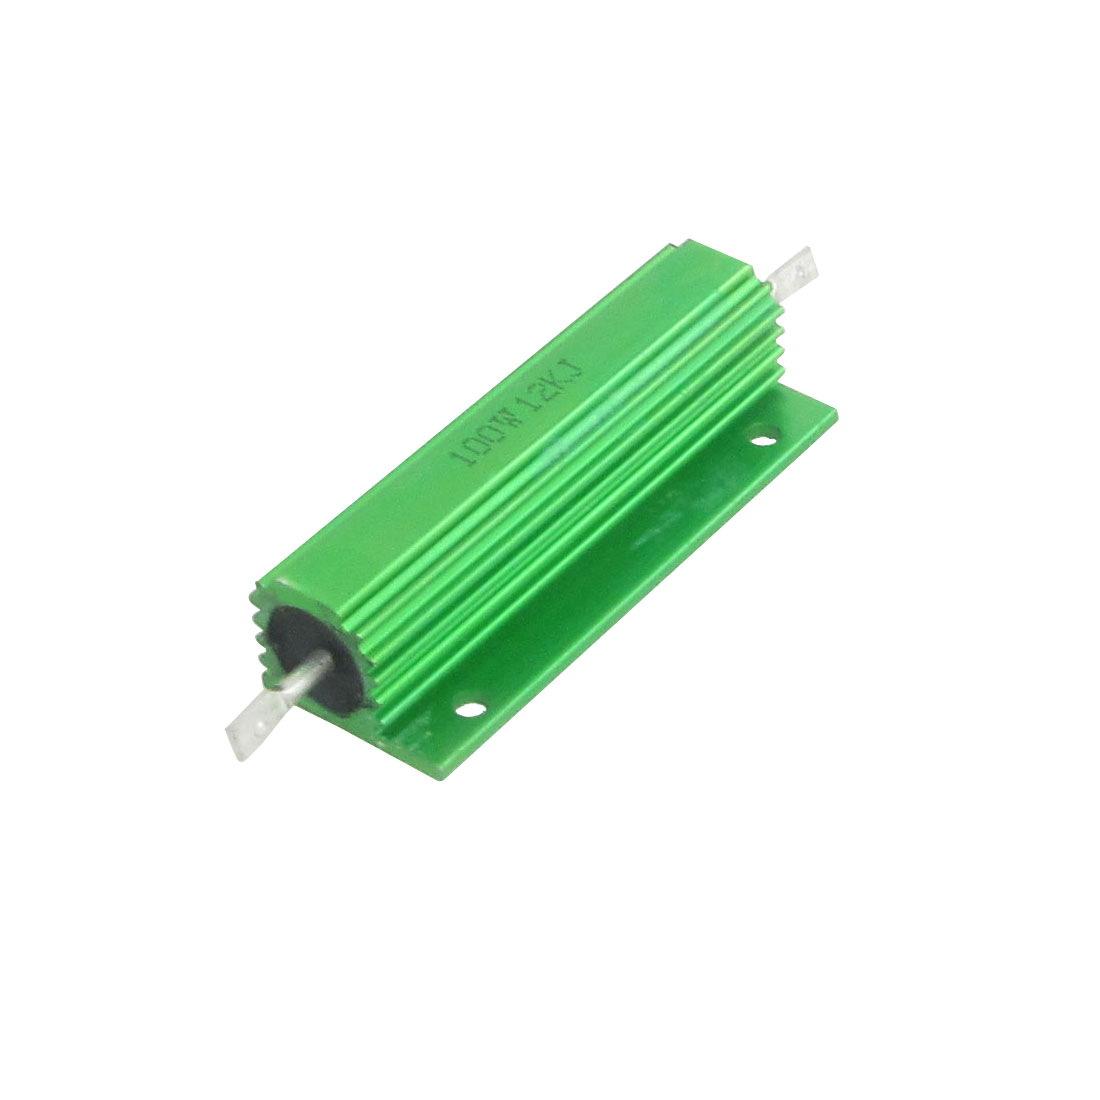 100W 12K Ohm Screw Tap Mounted Aluminum Housed Wirewound Resistors 2 Pcs